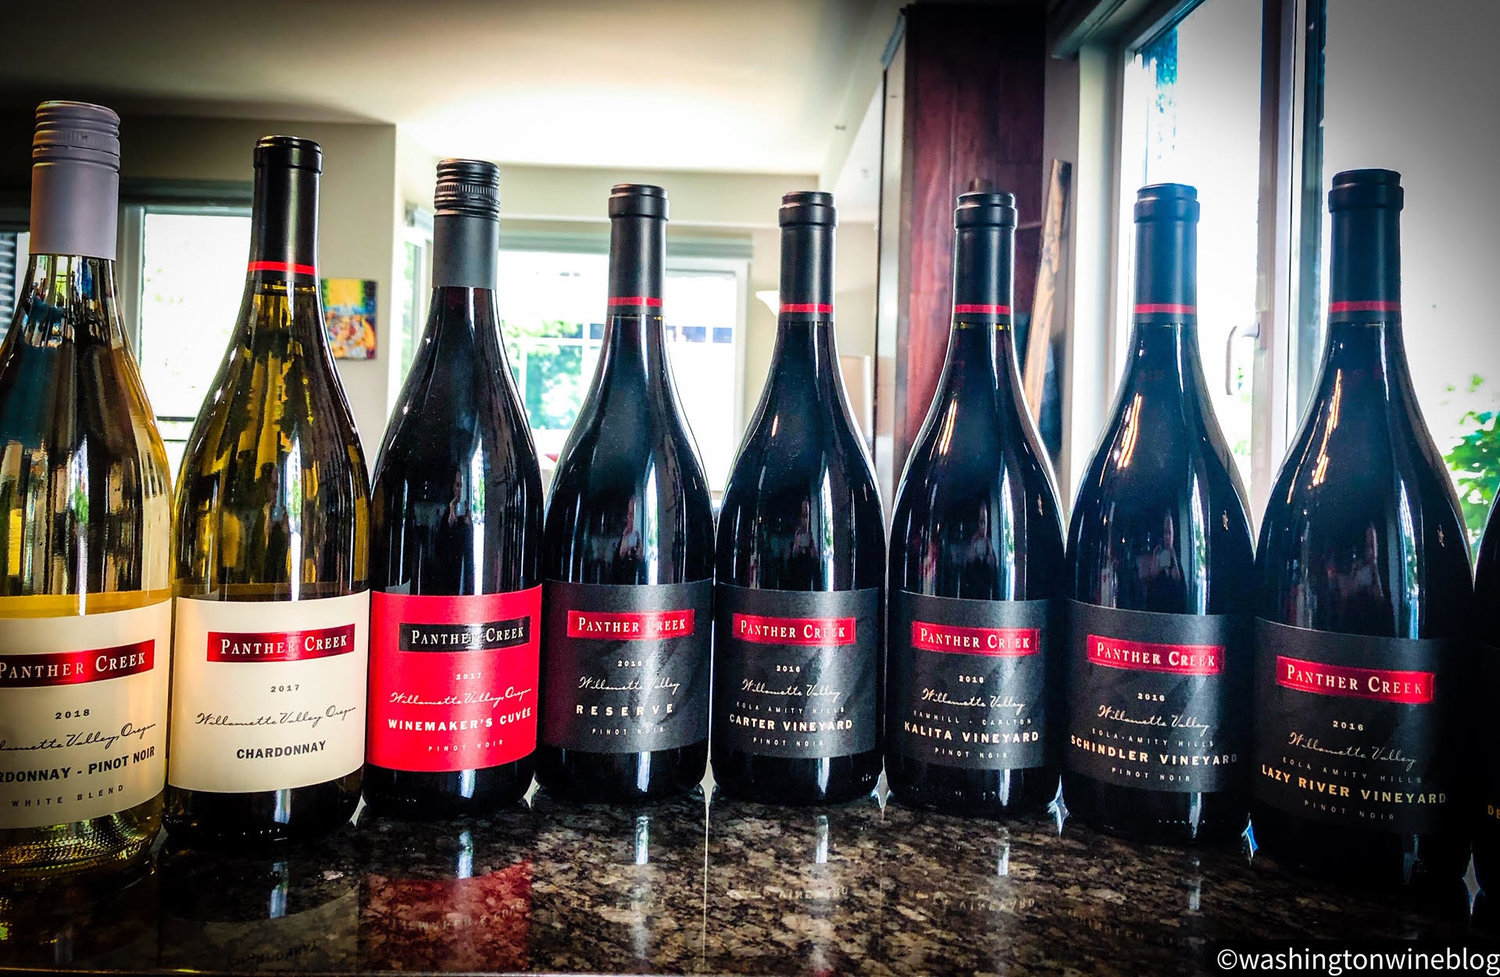 Panther Creek Cellars Wine Bottles in Washington Wine Blog Review